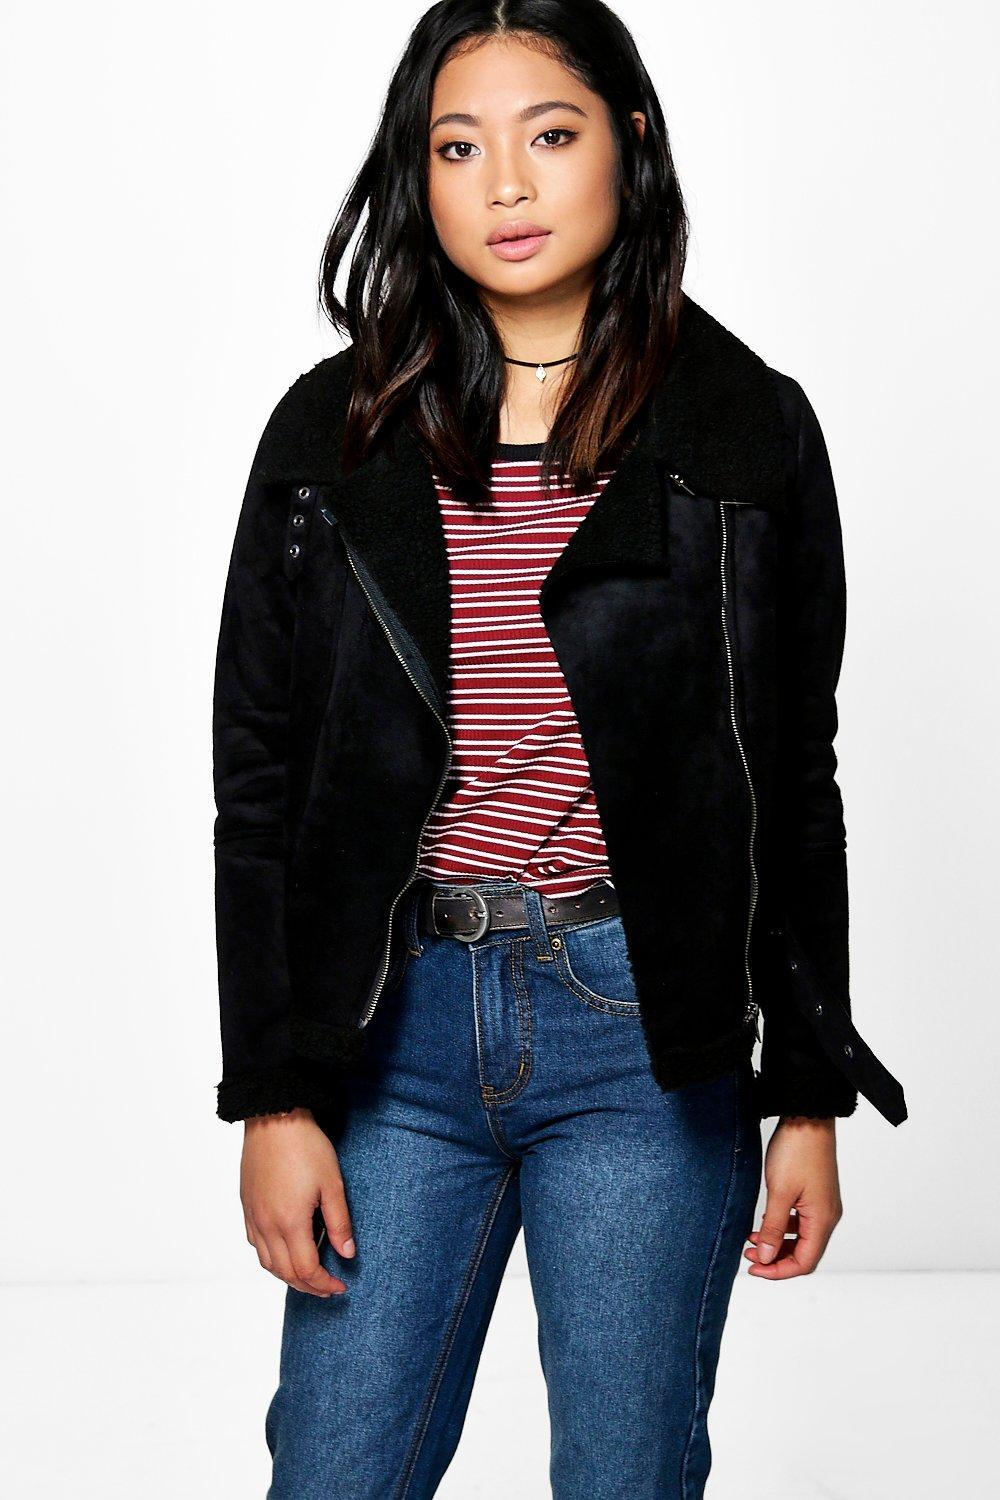 Click here to find out about the Petite Spot Print Cropped Denim Jacket from Boohoo, part of our latest Coats & Jackets collection ready to shop online today!